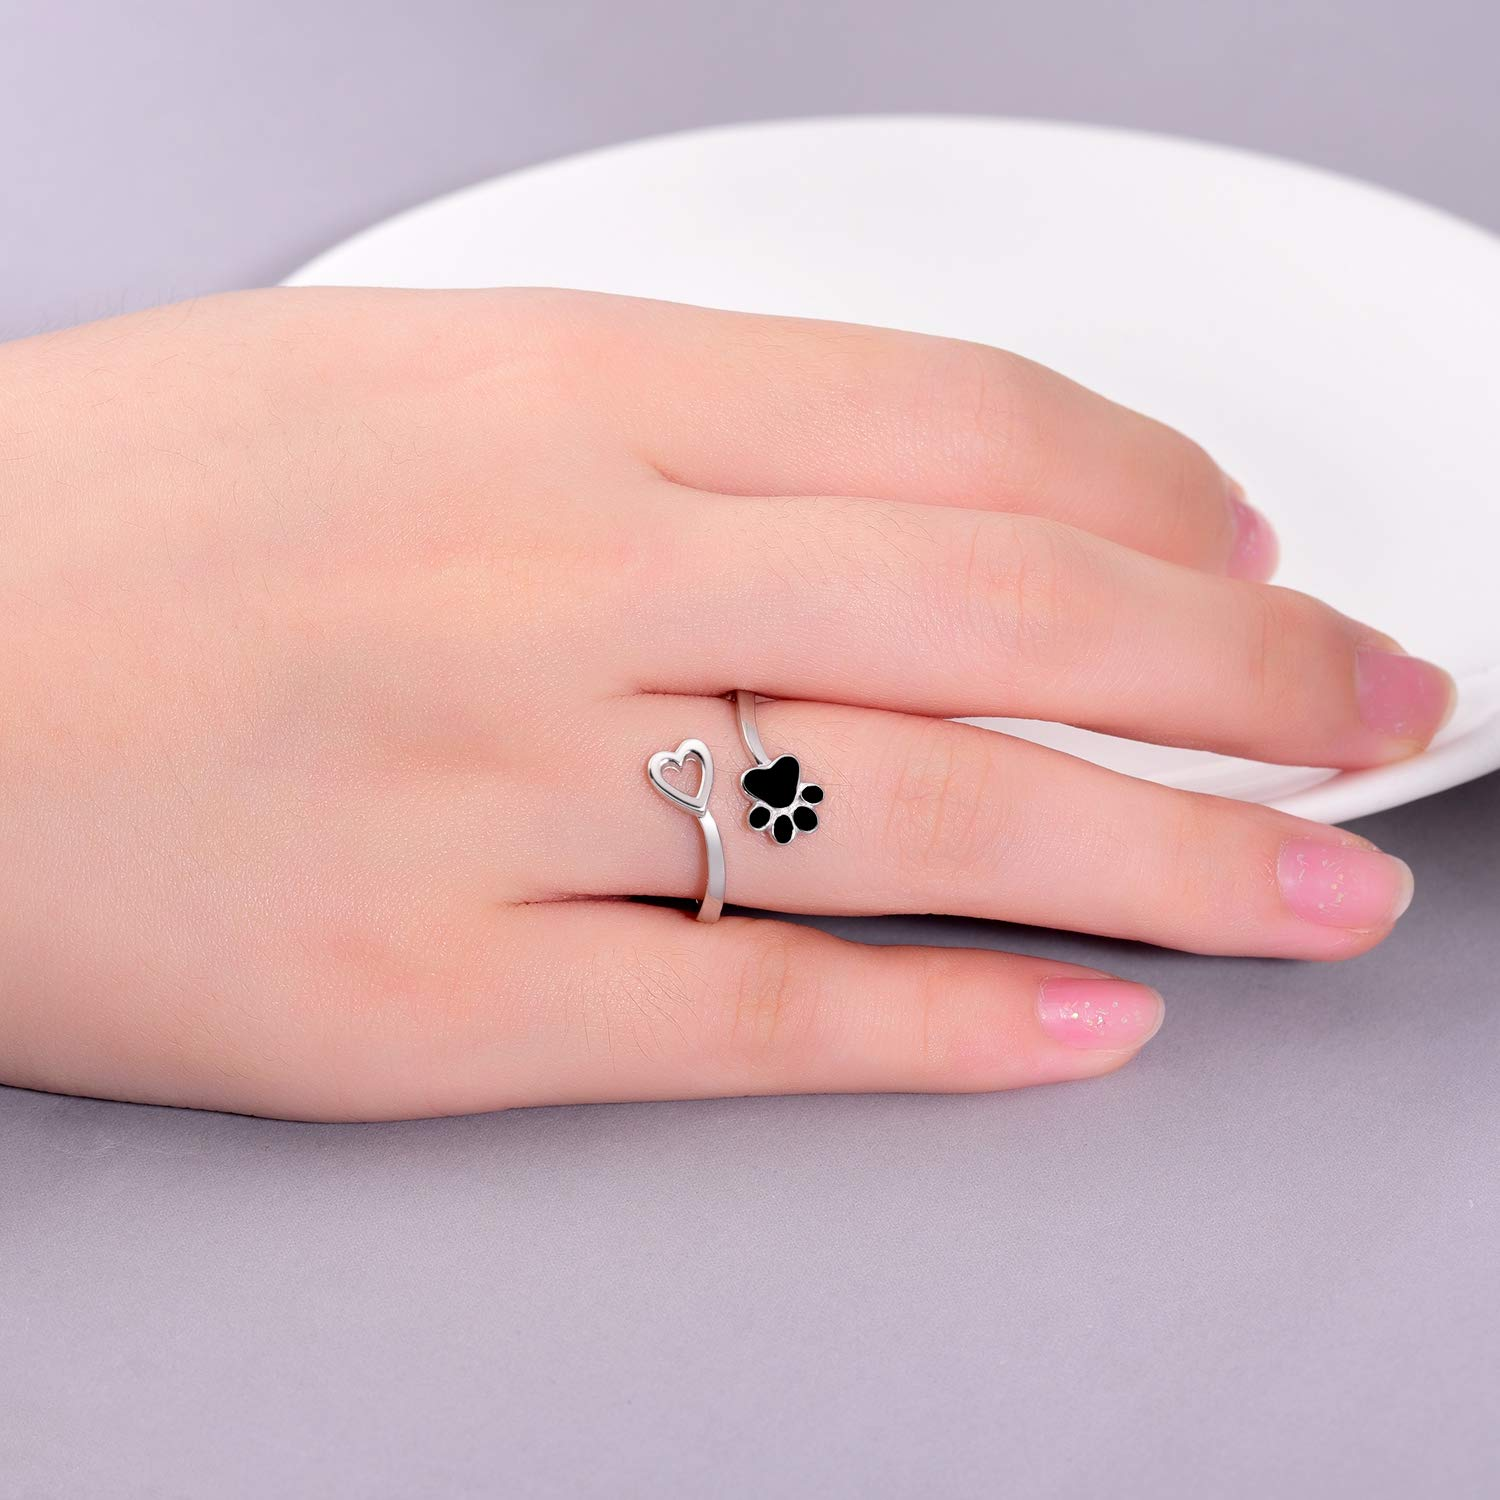 ACJFA 925 Sterling Silver Paw Print Love Heart Ring Adjustable Wrap Open Rings Jewelry for Pet Dog Cat by ACJFA (Image #3)